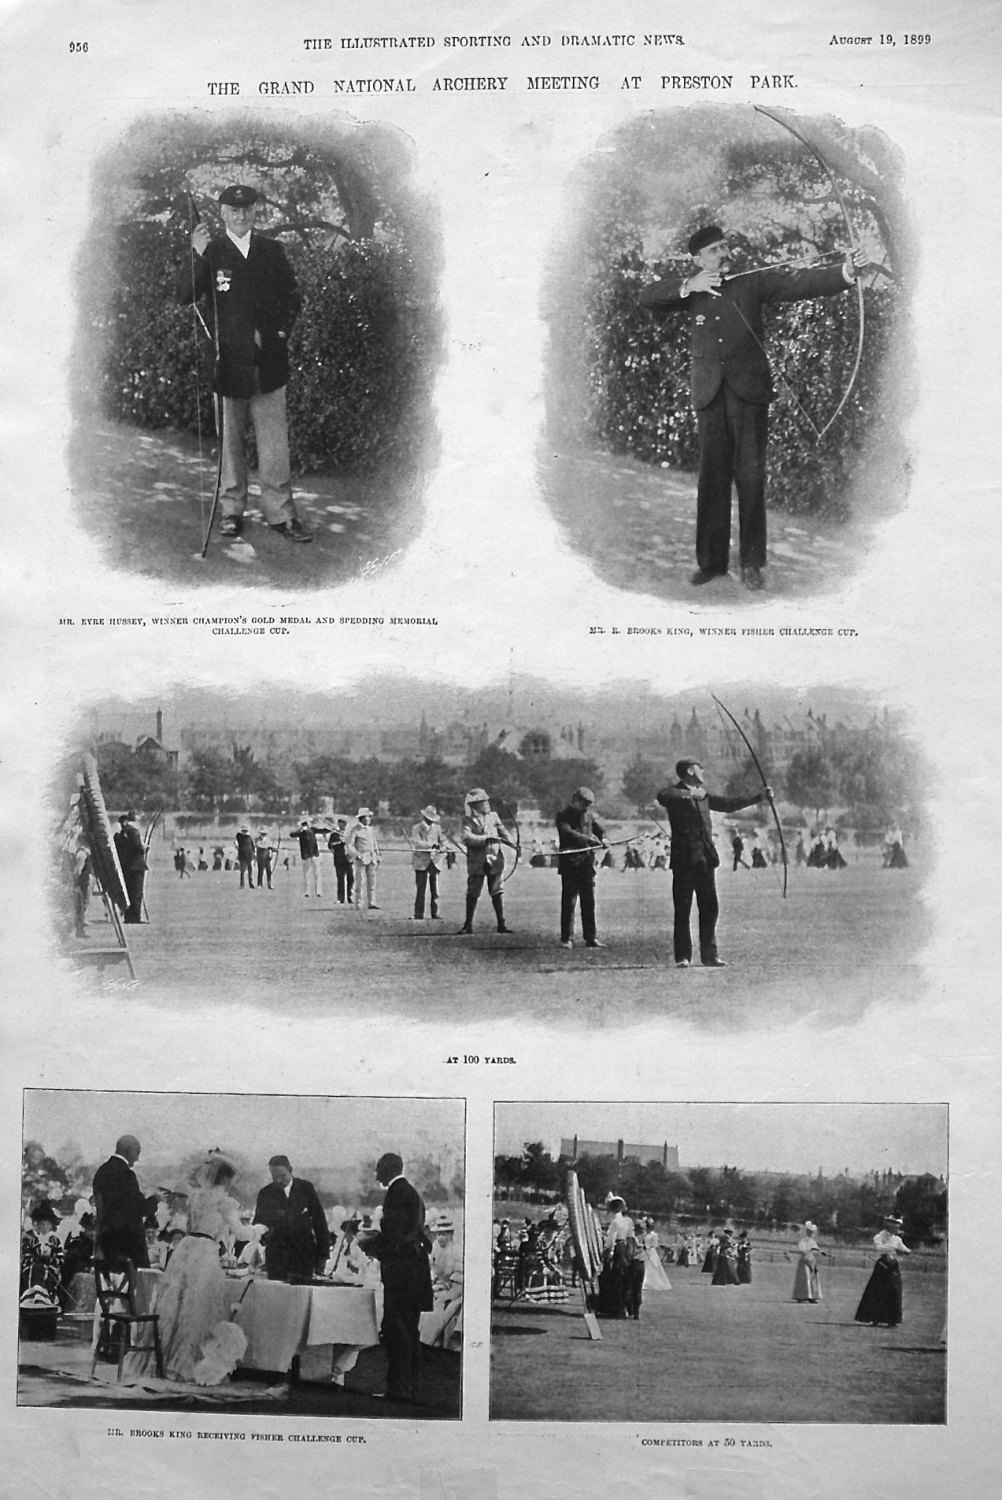 Grand National Archery Meeting at Preston Park. 1899